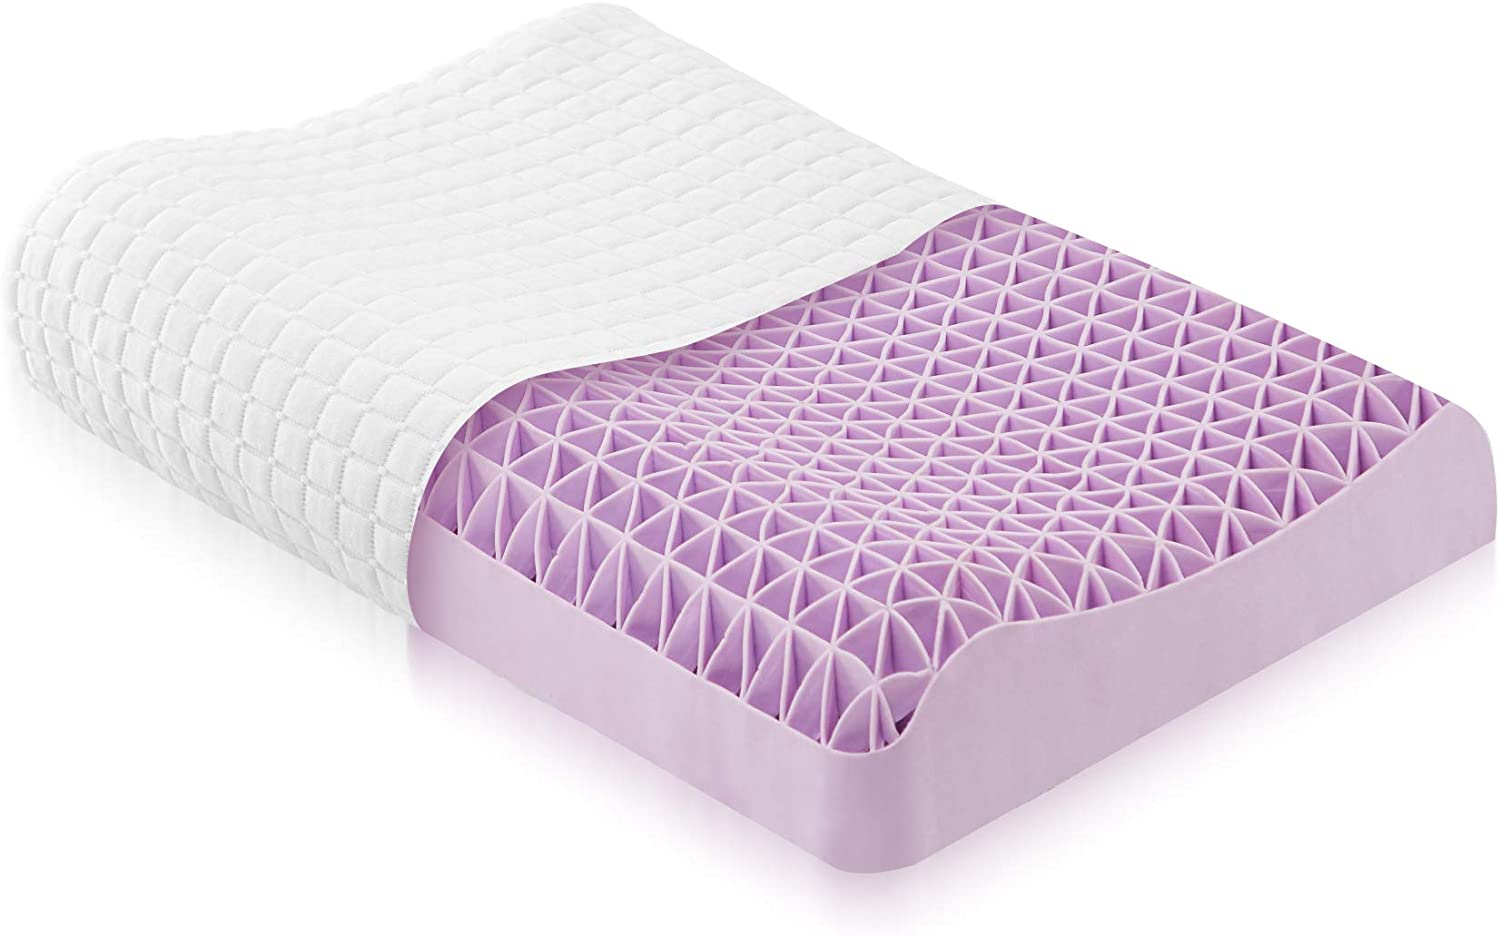 DAPU Purple Pillow Optimal Head Neck Support for Hot Sleepers 360/º Grid Hex Soft Responsive Cool Moisture-Wicking for Neck Pain